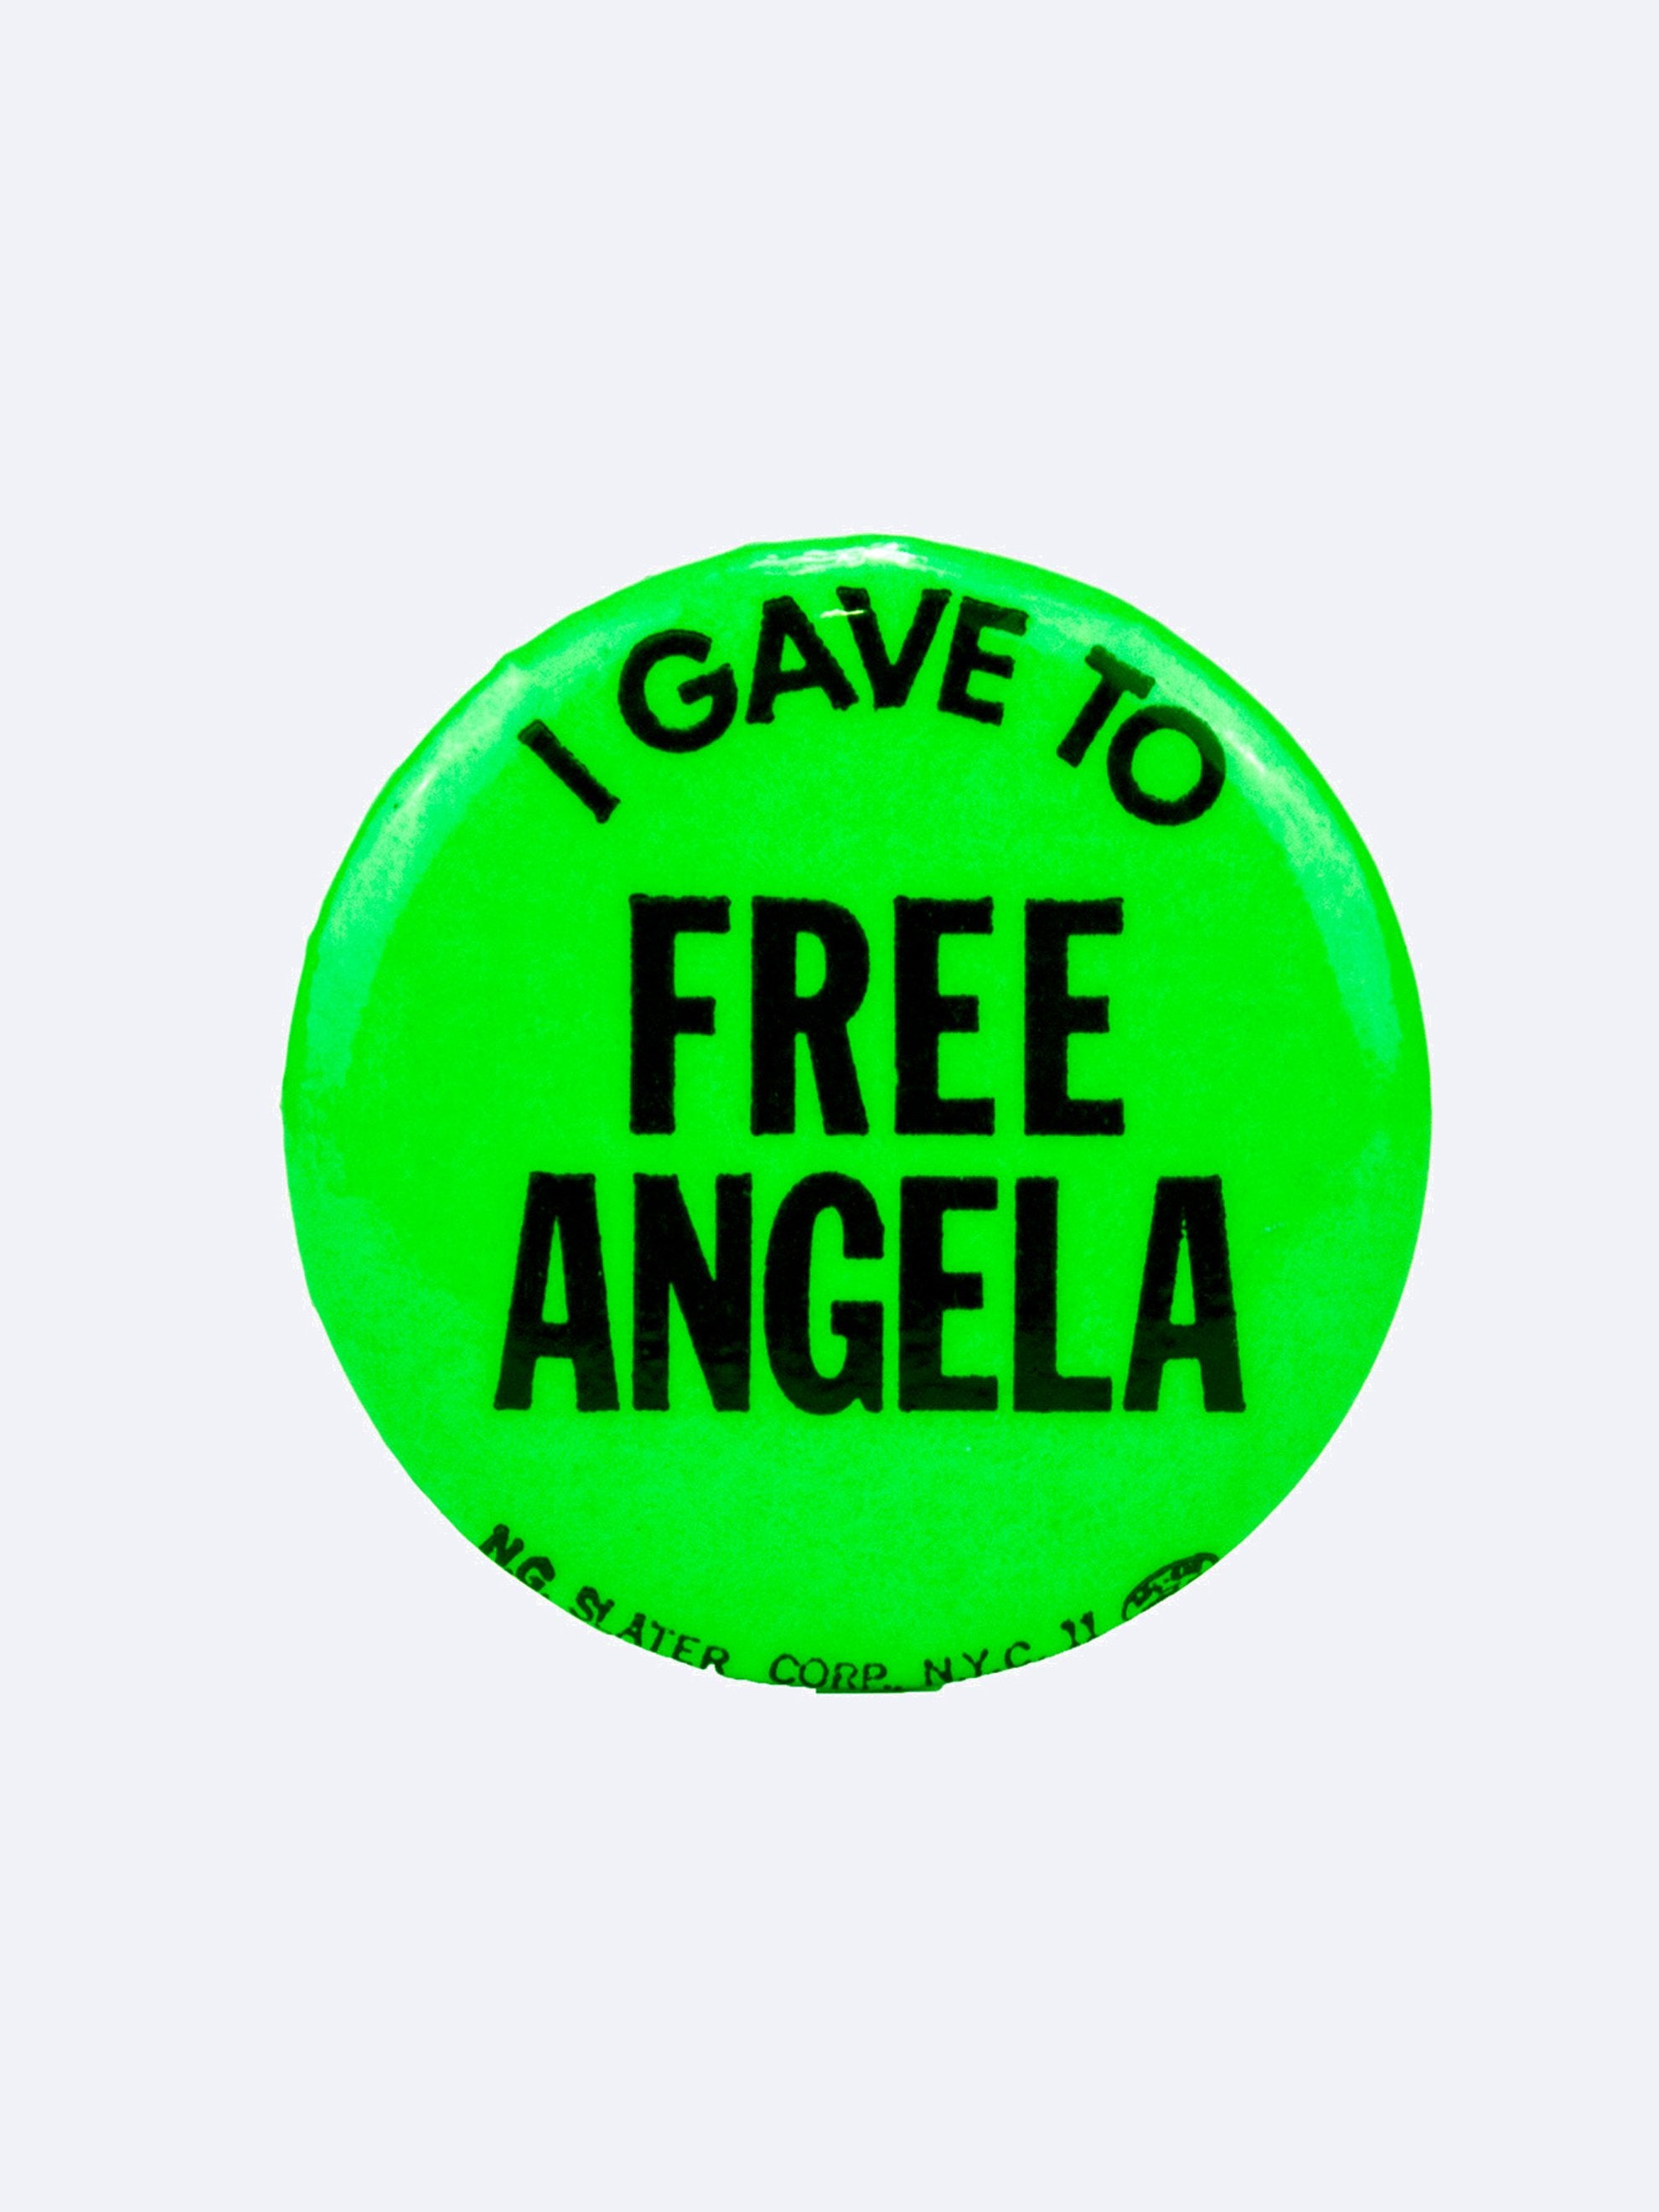 "Neon Green Vintage 1970's Activist Protest Pin ""I Gave To Free Angela"" 1"